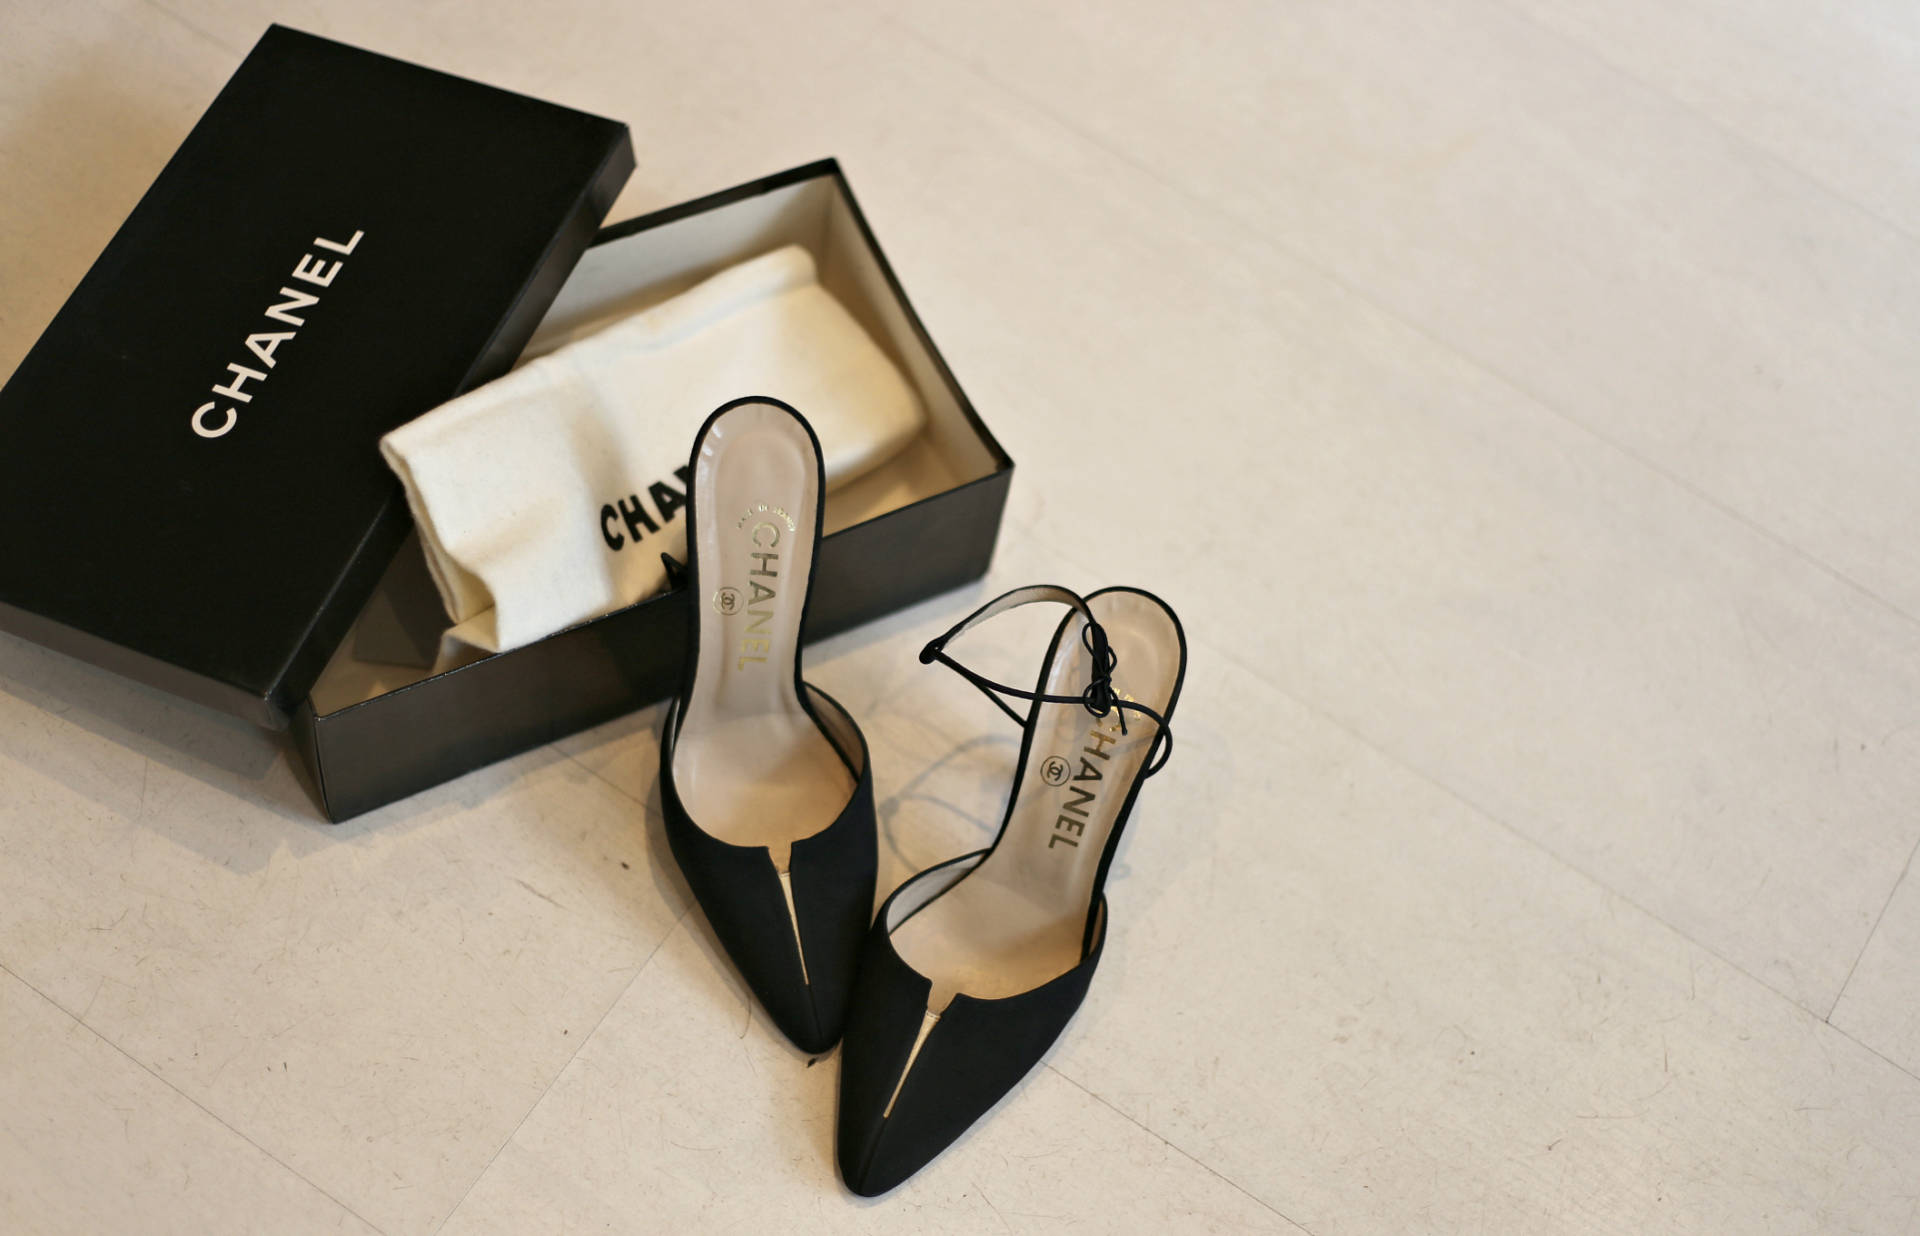 summer-festival-connaught-village-chanel-shoes